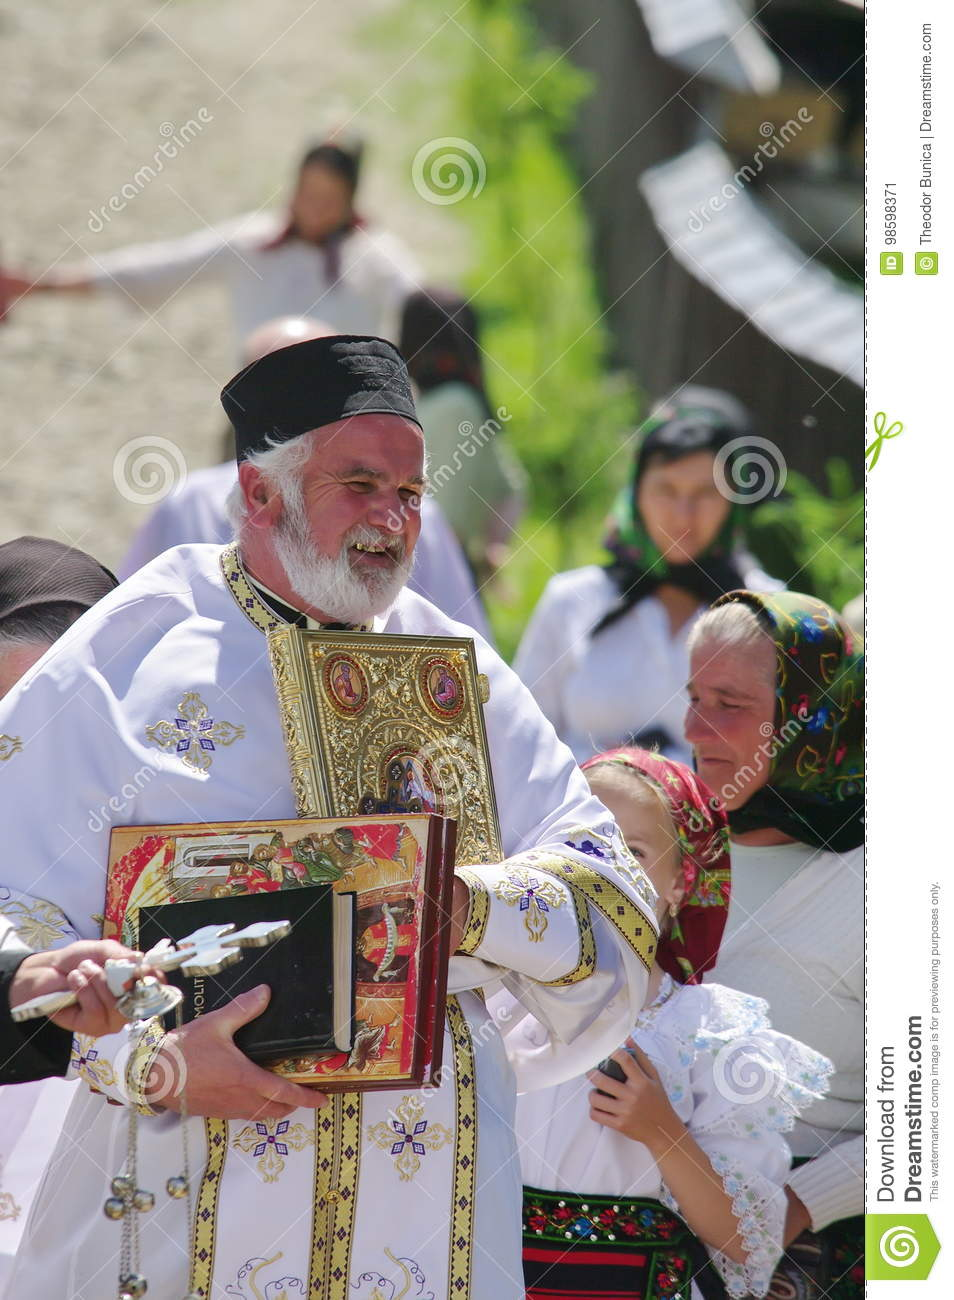 Orthodox priest and people in traditional national costumes - a village in Maramures, Romania